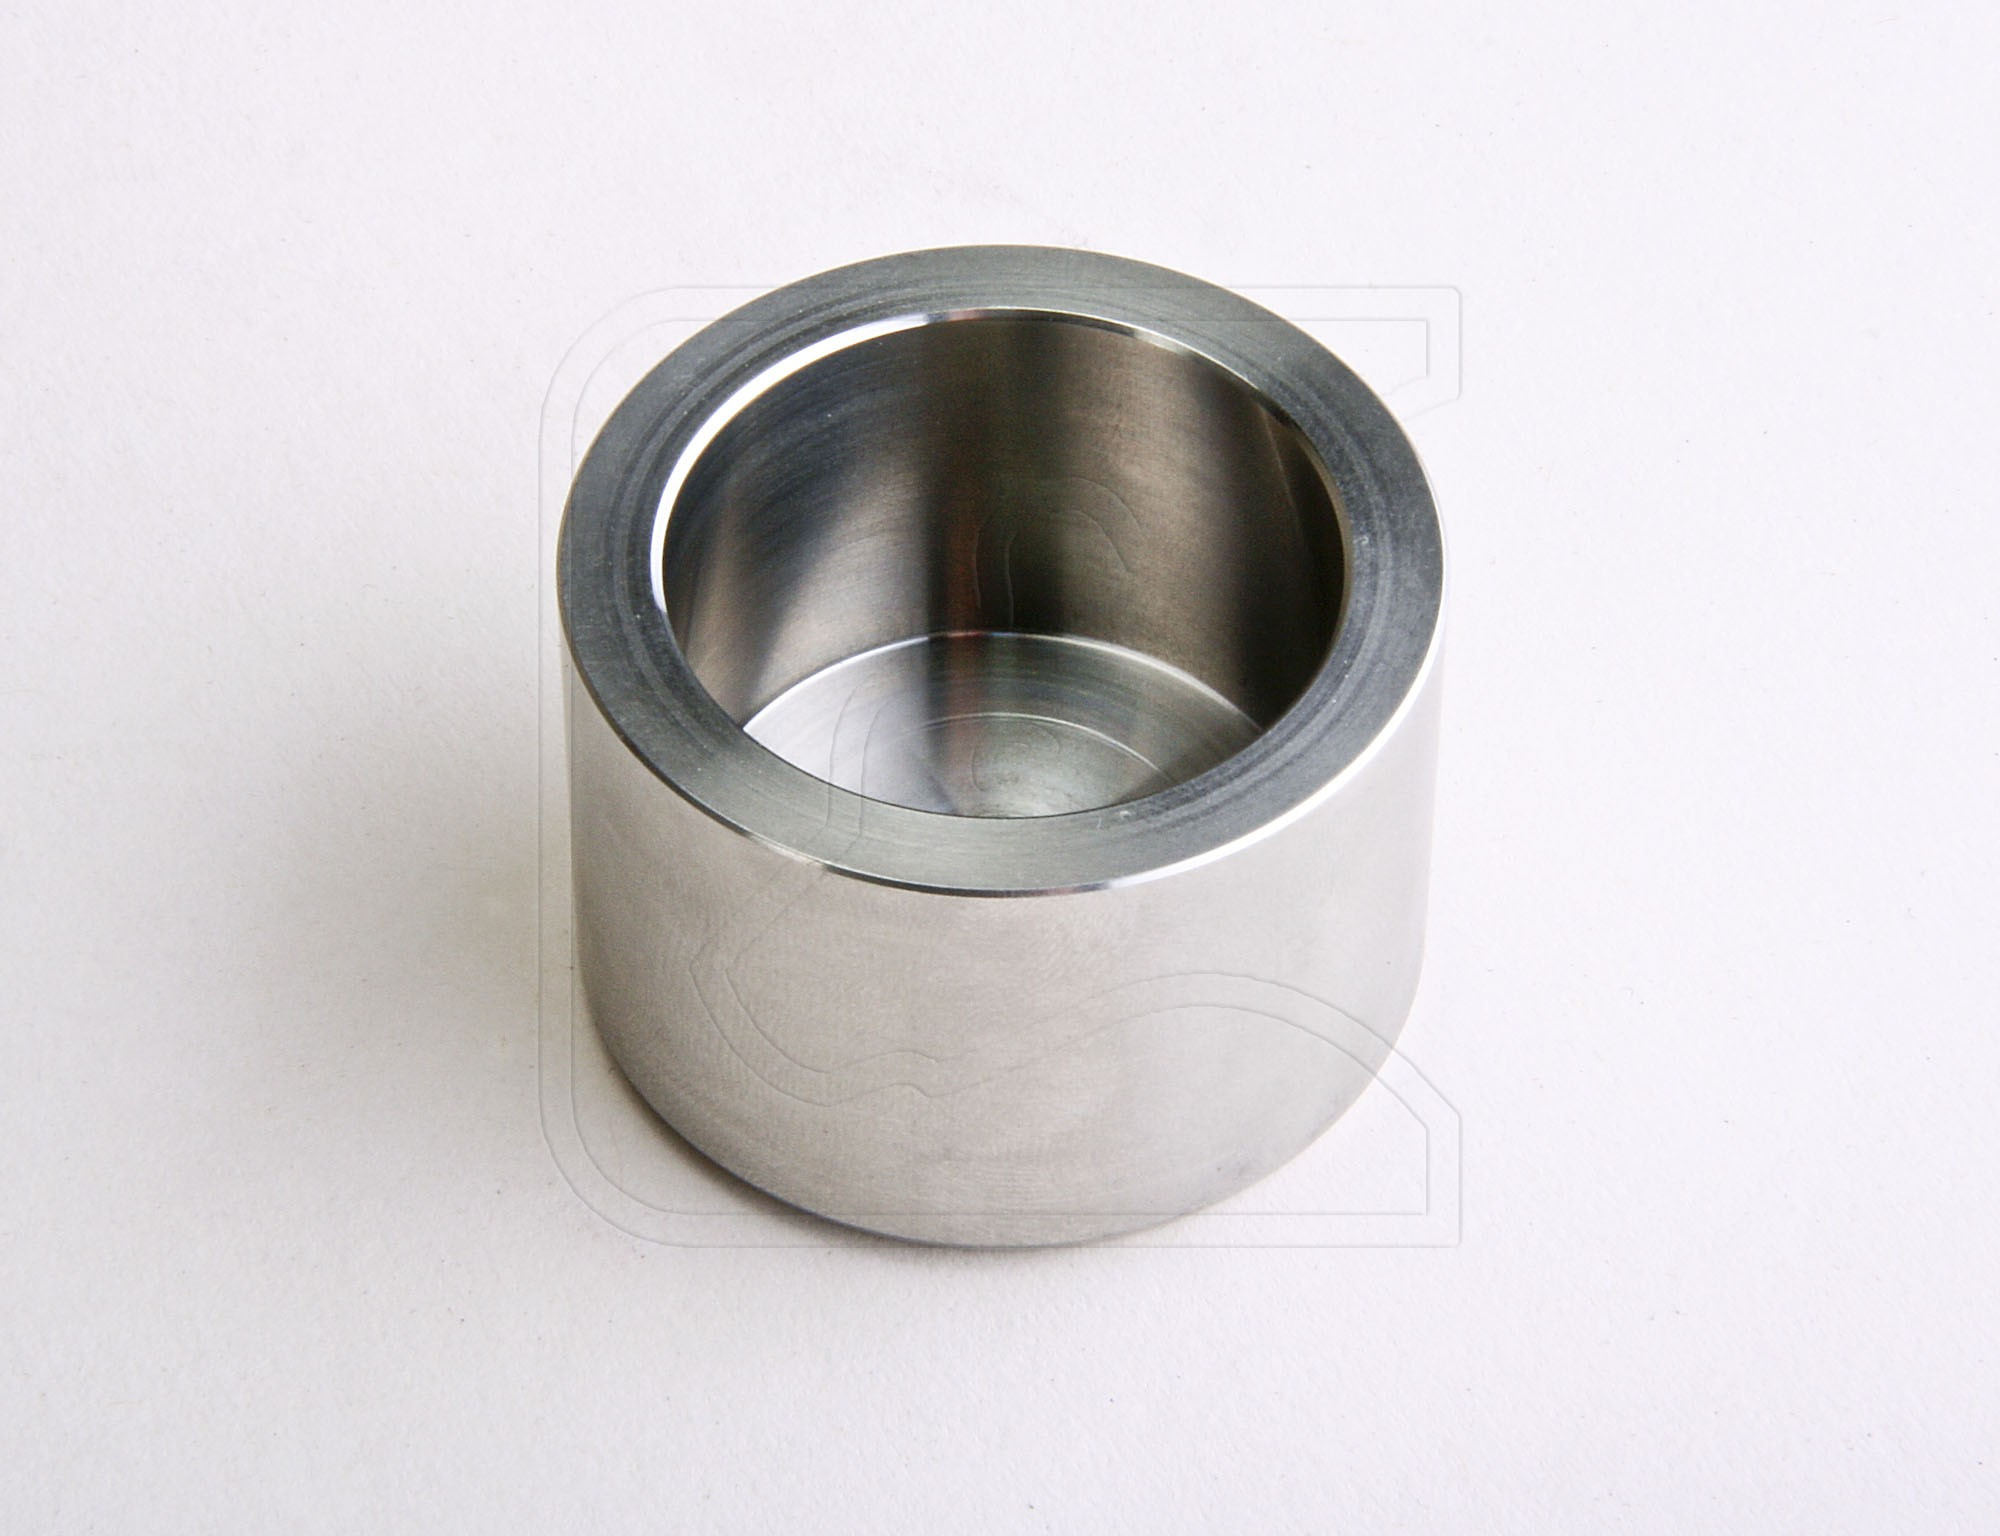 Stainless steel brake piston for Land Rover Defender - 46.0 x 30.8mm